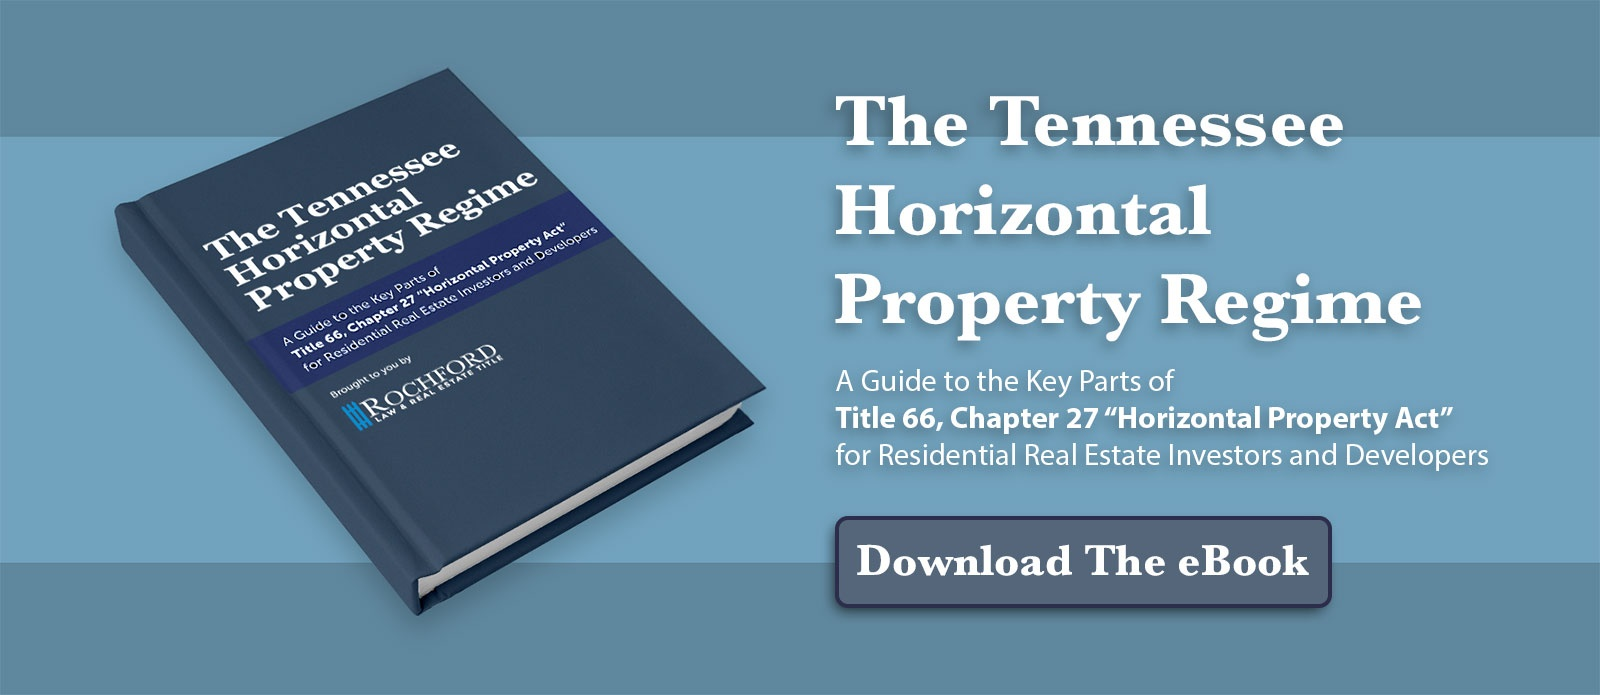 Horizontal Property Regime eBook